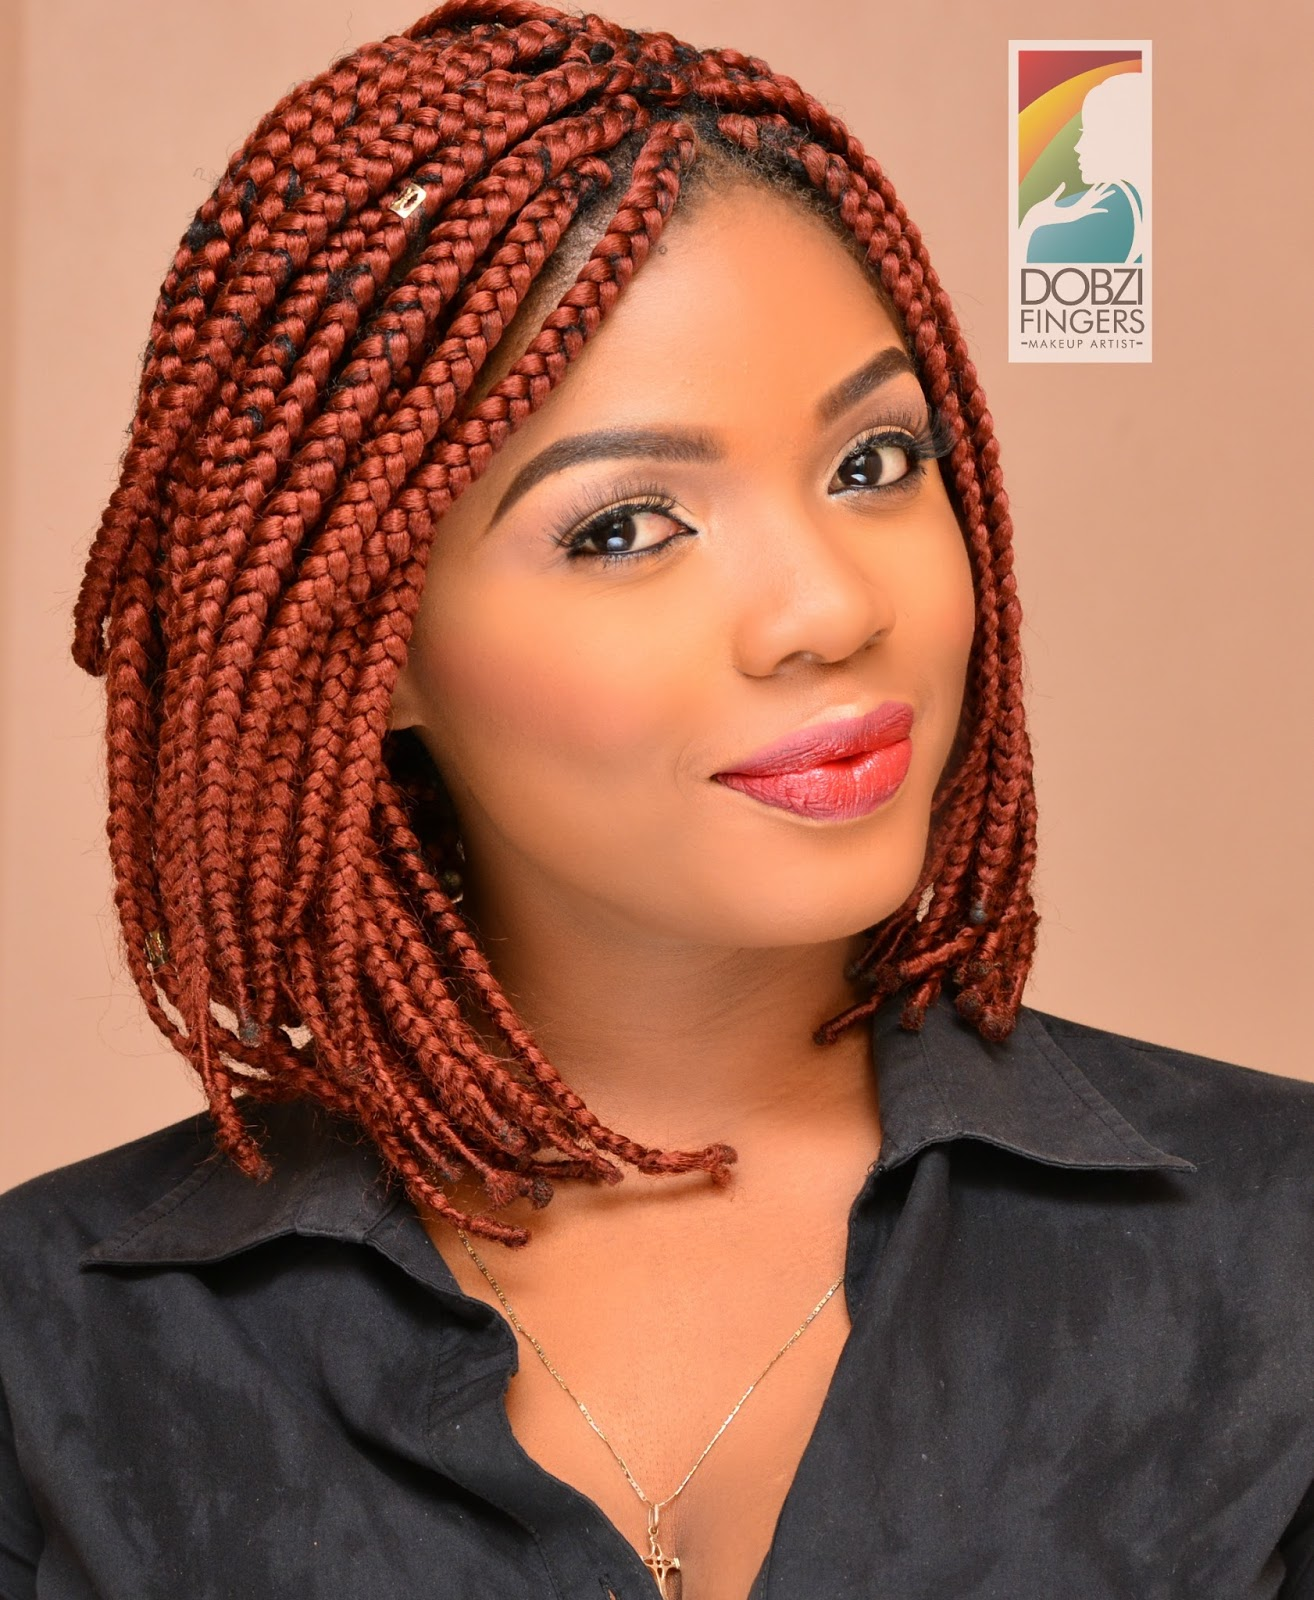 nigerian beauty blogger and makeup artist